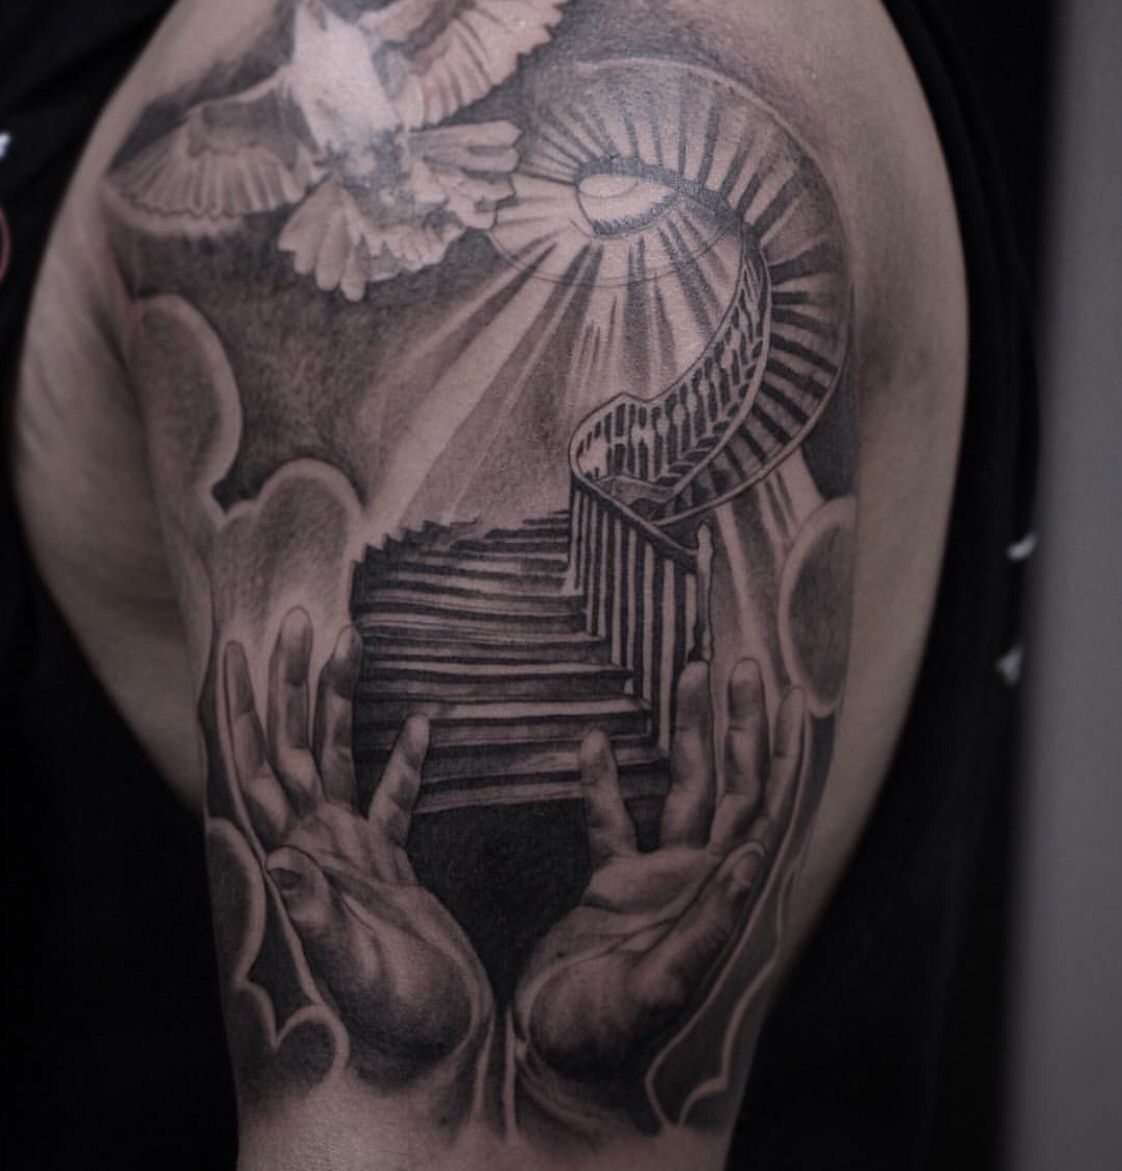 Tattoos for men praying hands stairway to heaven tattoo gabriel hernandez u royal craft gallery